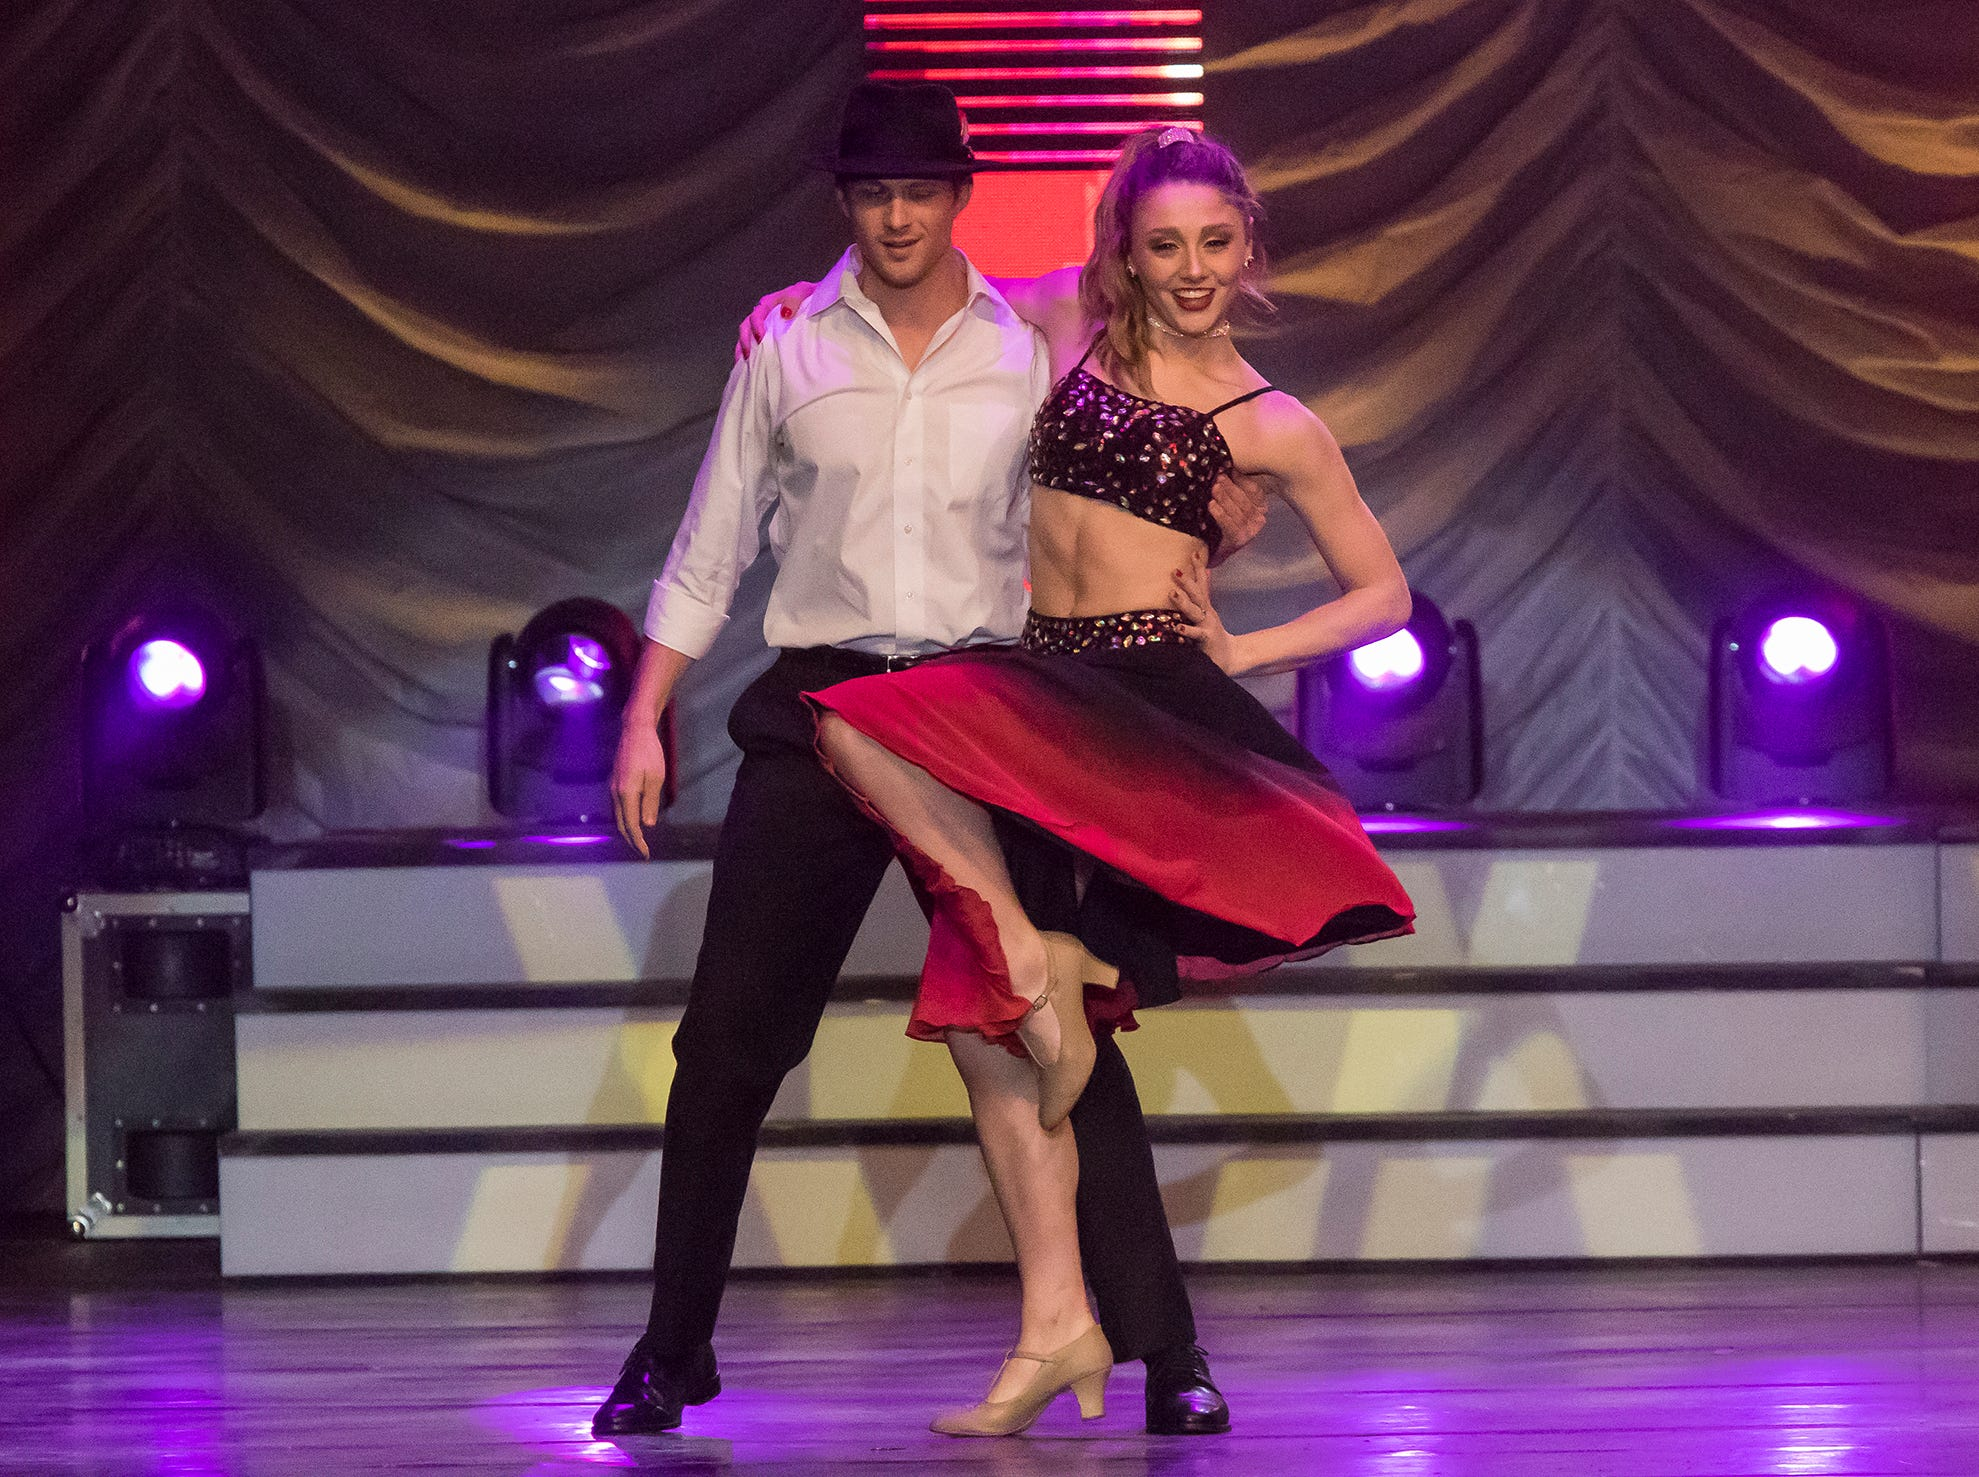 Louisiana Delta Ballet held their annual Dancing with the Louisiana Stars at the Monroe Civic Center in Monroe, La. on March 8. Nick Harrison won the choreography award, Luke Letlow won the People's Choice award, B. Jay Durrett placed third, Hope Anderson placed second and Aimee Hayward won the competition with first place